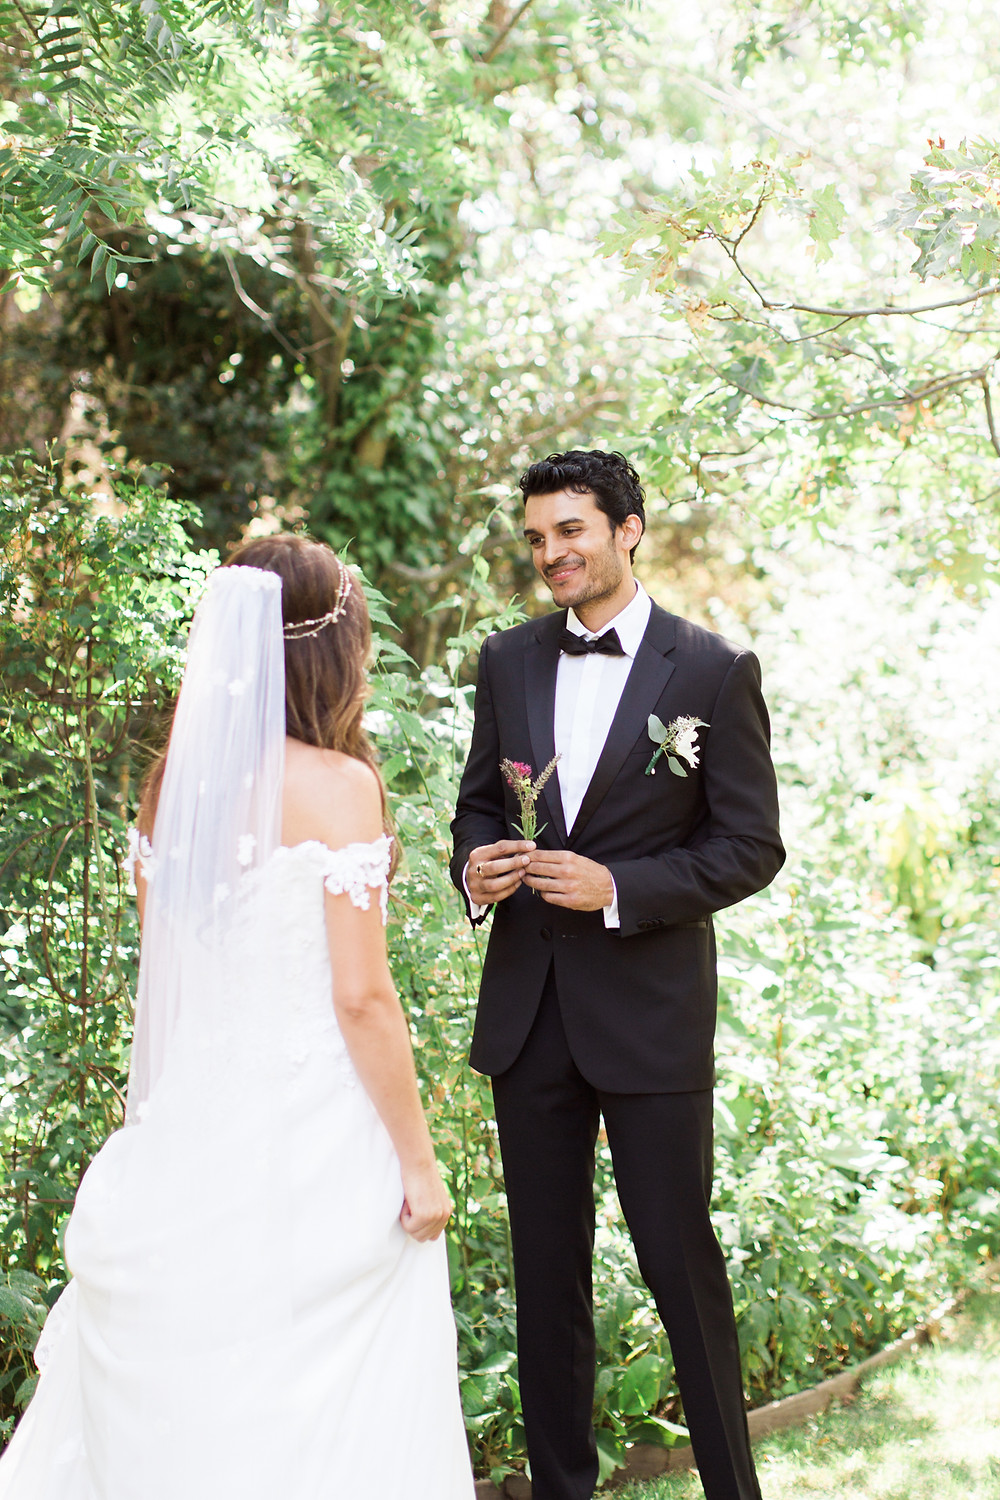 Groom smiles as he hands bride the flowers he picked for her.